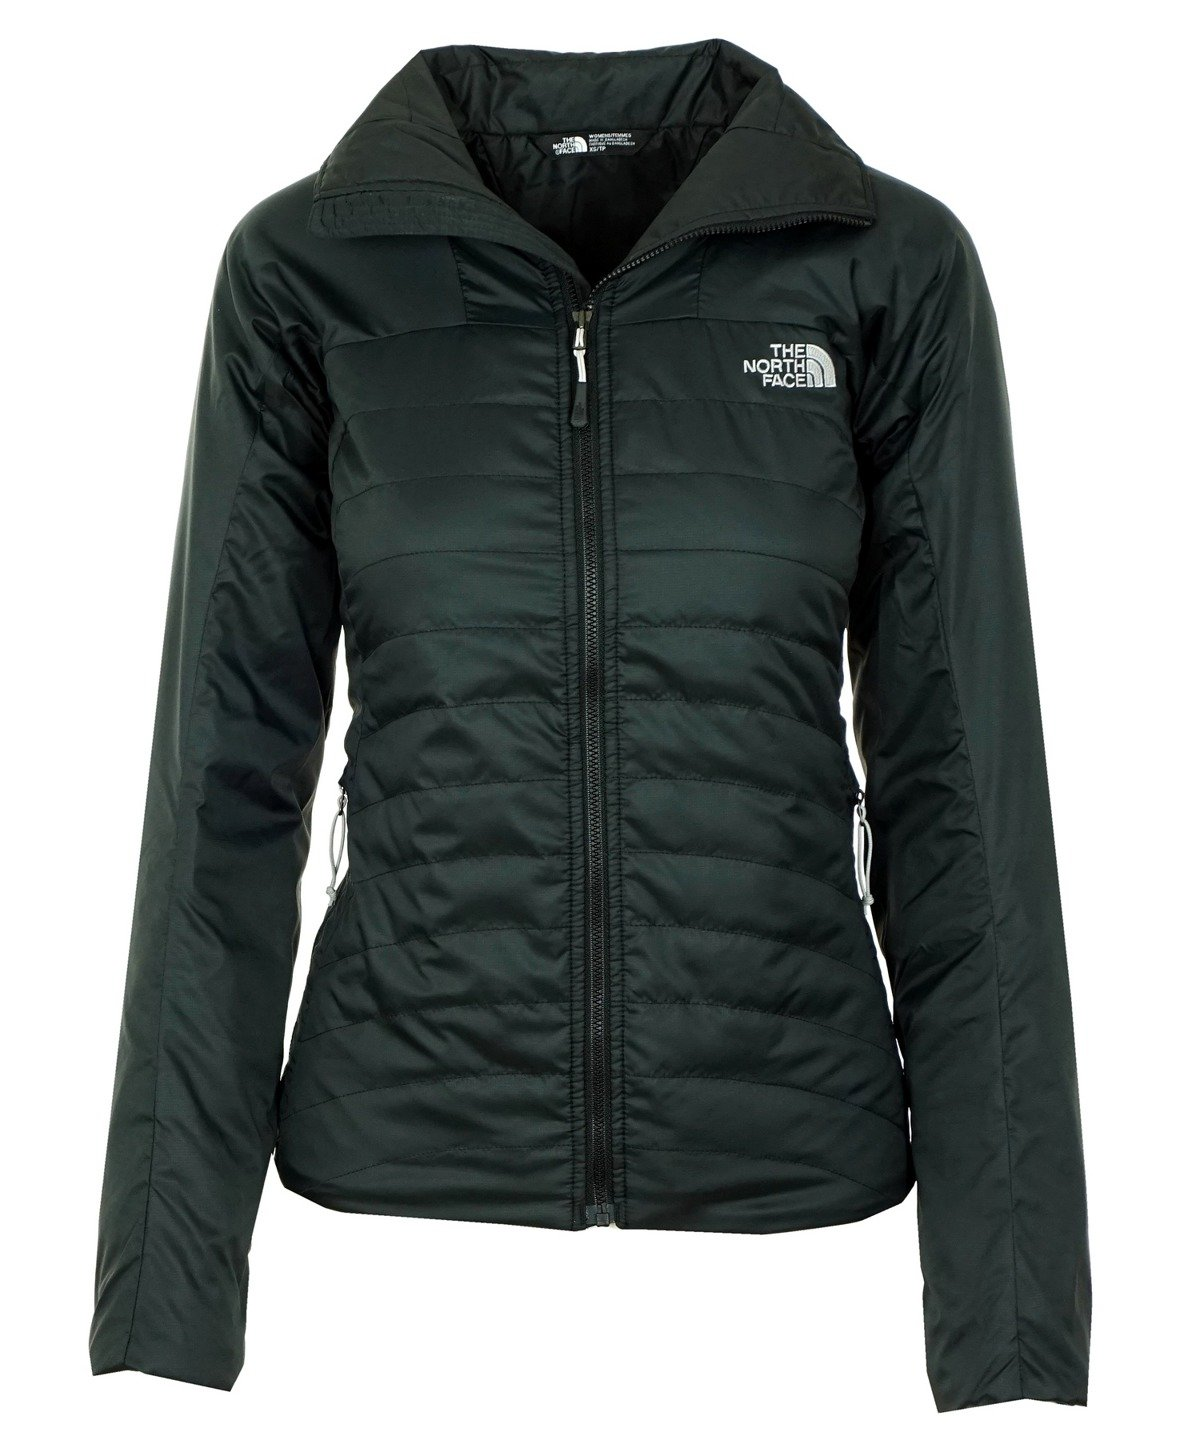 4e032bb889 THE NORTH FACE Damen Women Outdoor Jacke Jacket Schwarz Black Click to zoom  ...